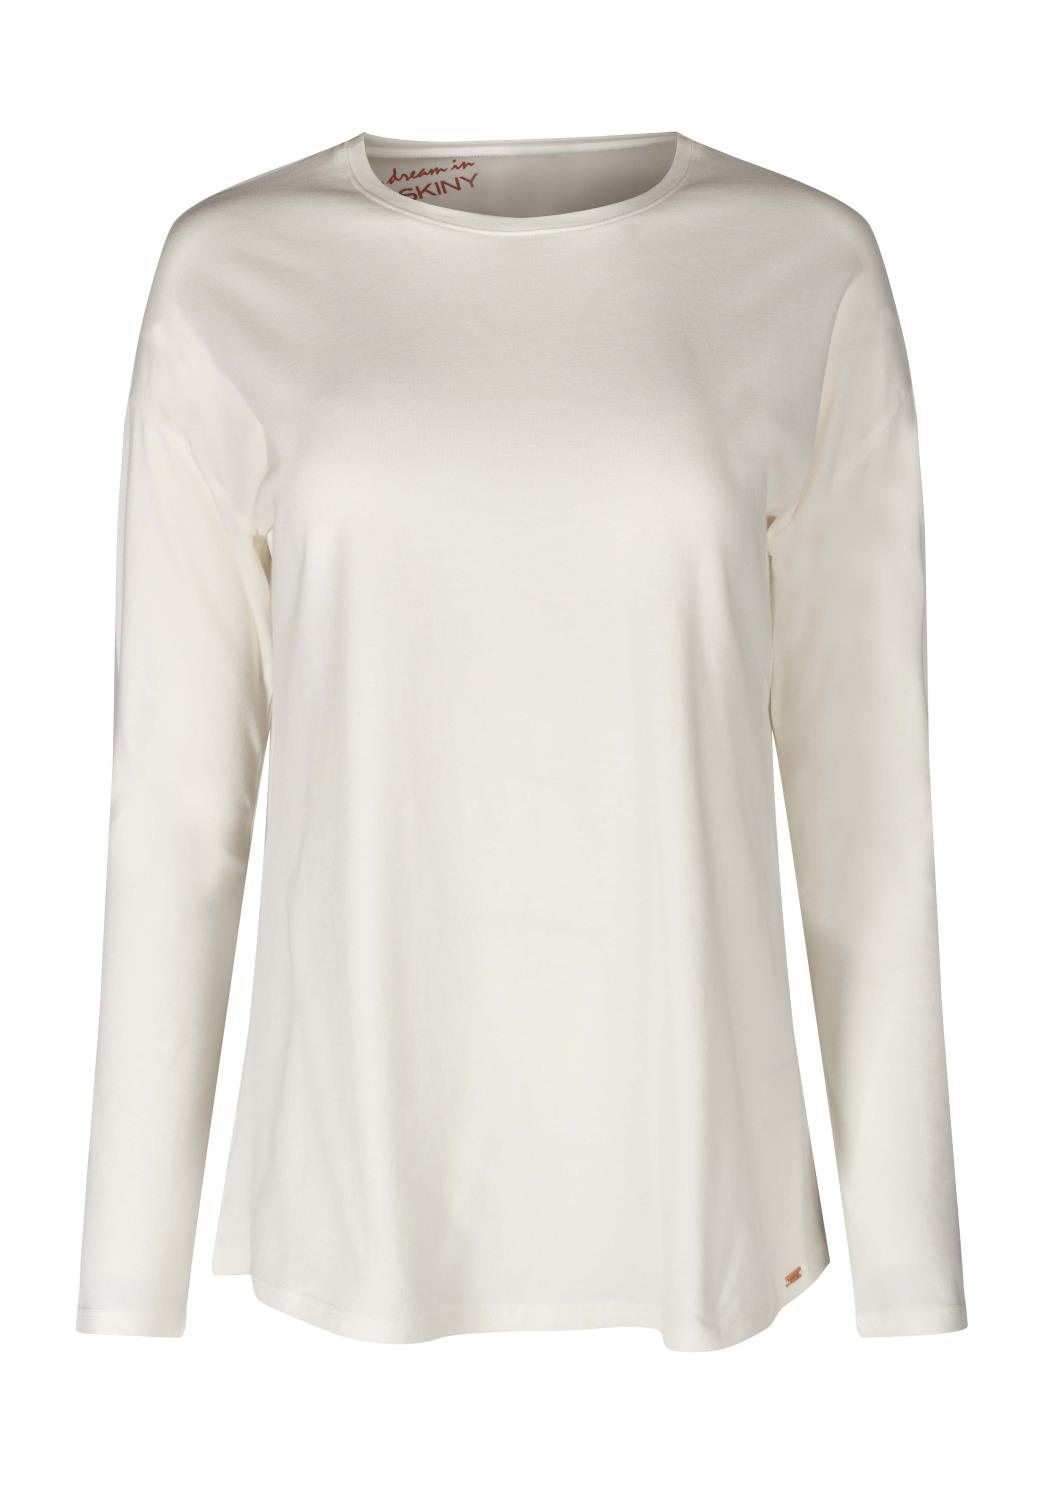 Skiny Sleep & Dream, L. shirt long sleeve, ivory